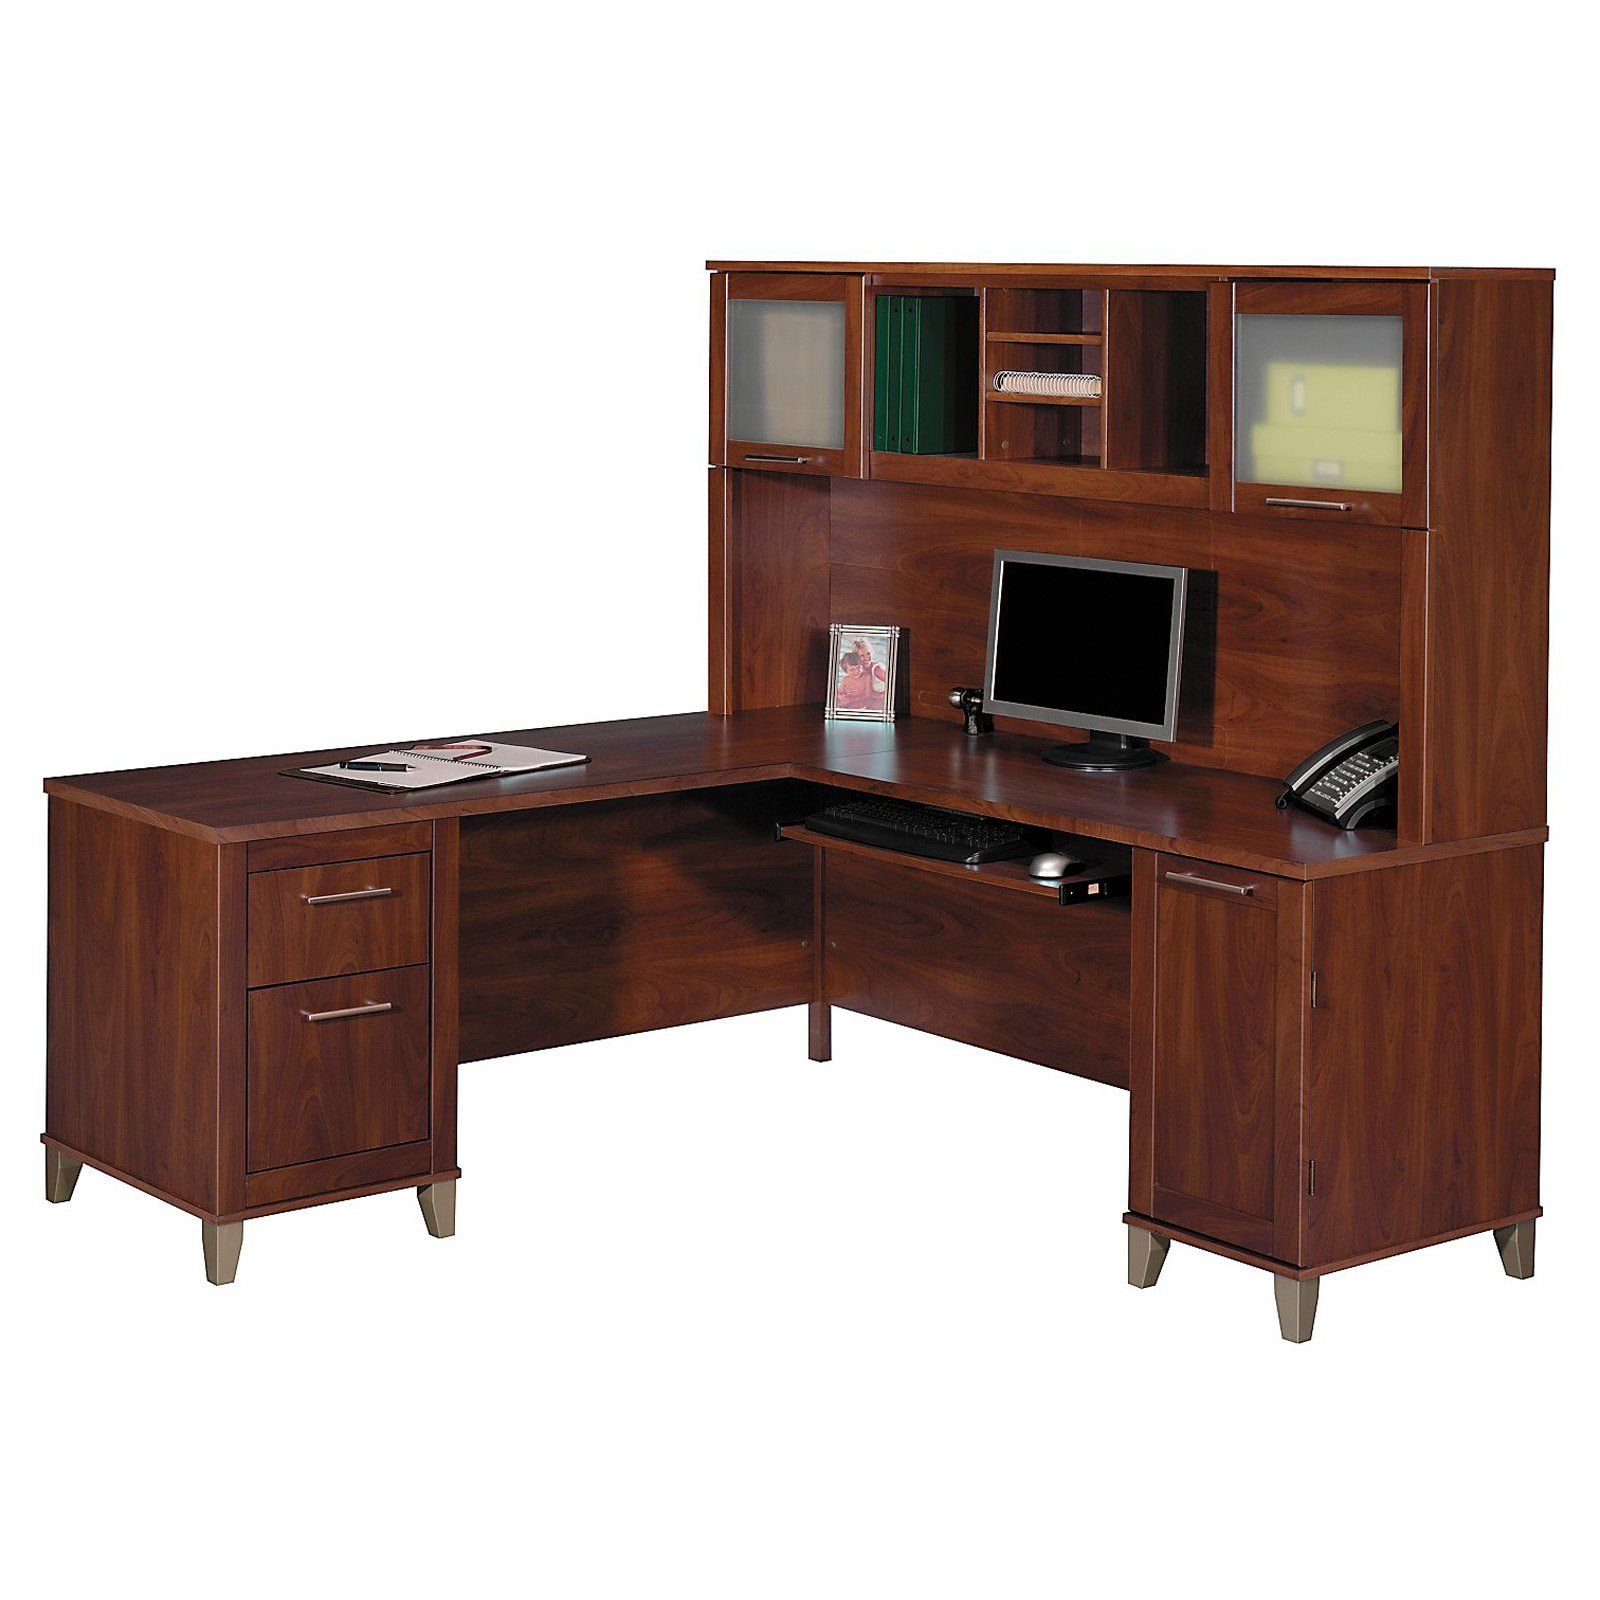 bush somerset lshaped desk with hutch the bush somerset lshaped desk with hutch is the ultimate office garnish comprising a solid mdf with laminate